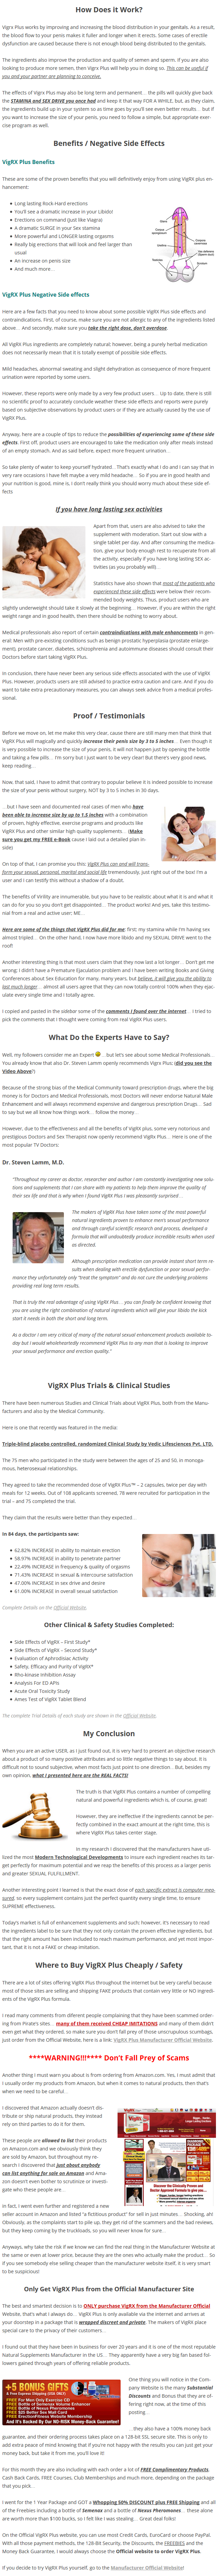 vigrx-plus-natural-male-enhancement